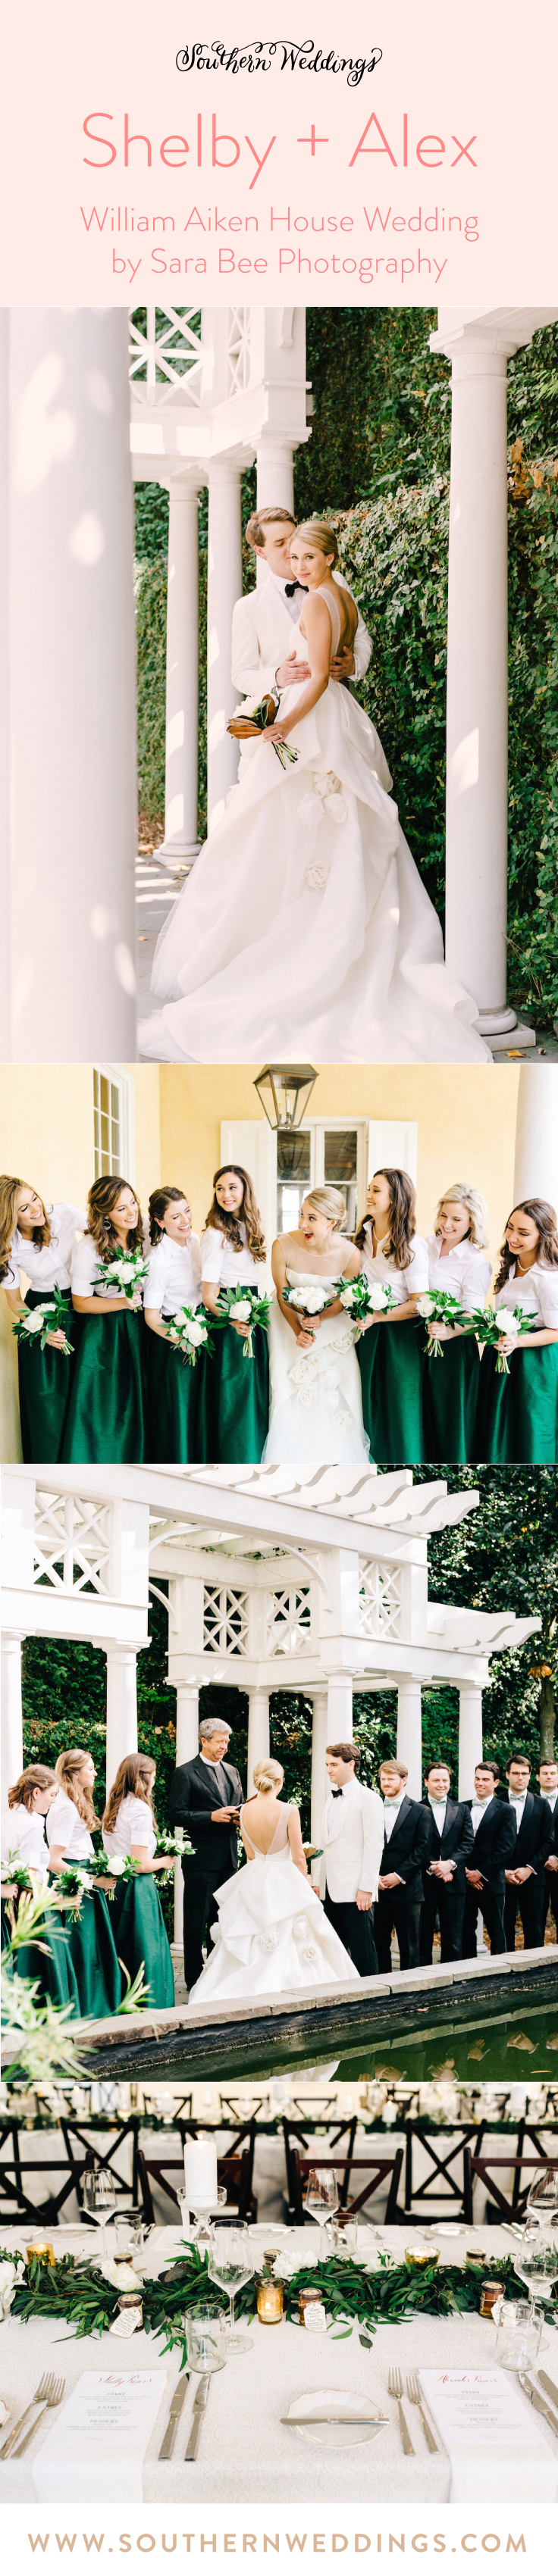 Wedding decorations outside house february 2019 William Aiken House Wedding by Sara Bee Photography  May